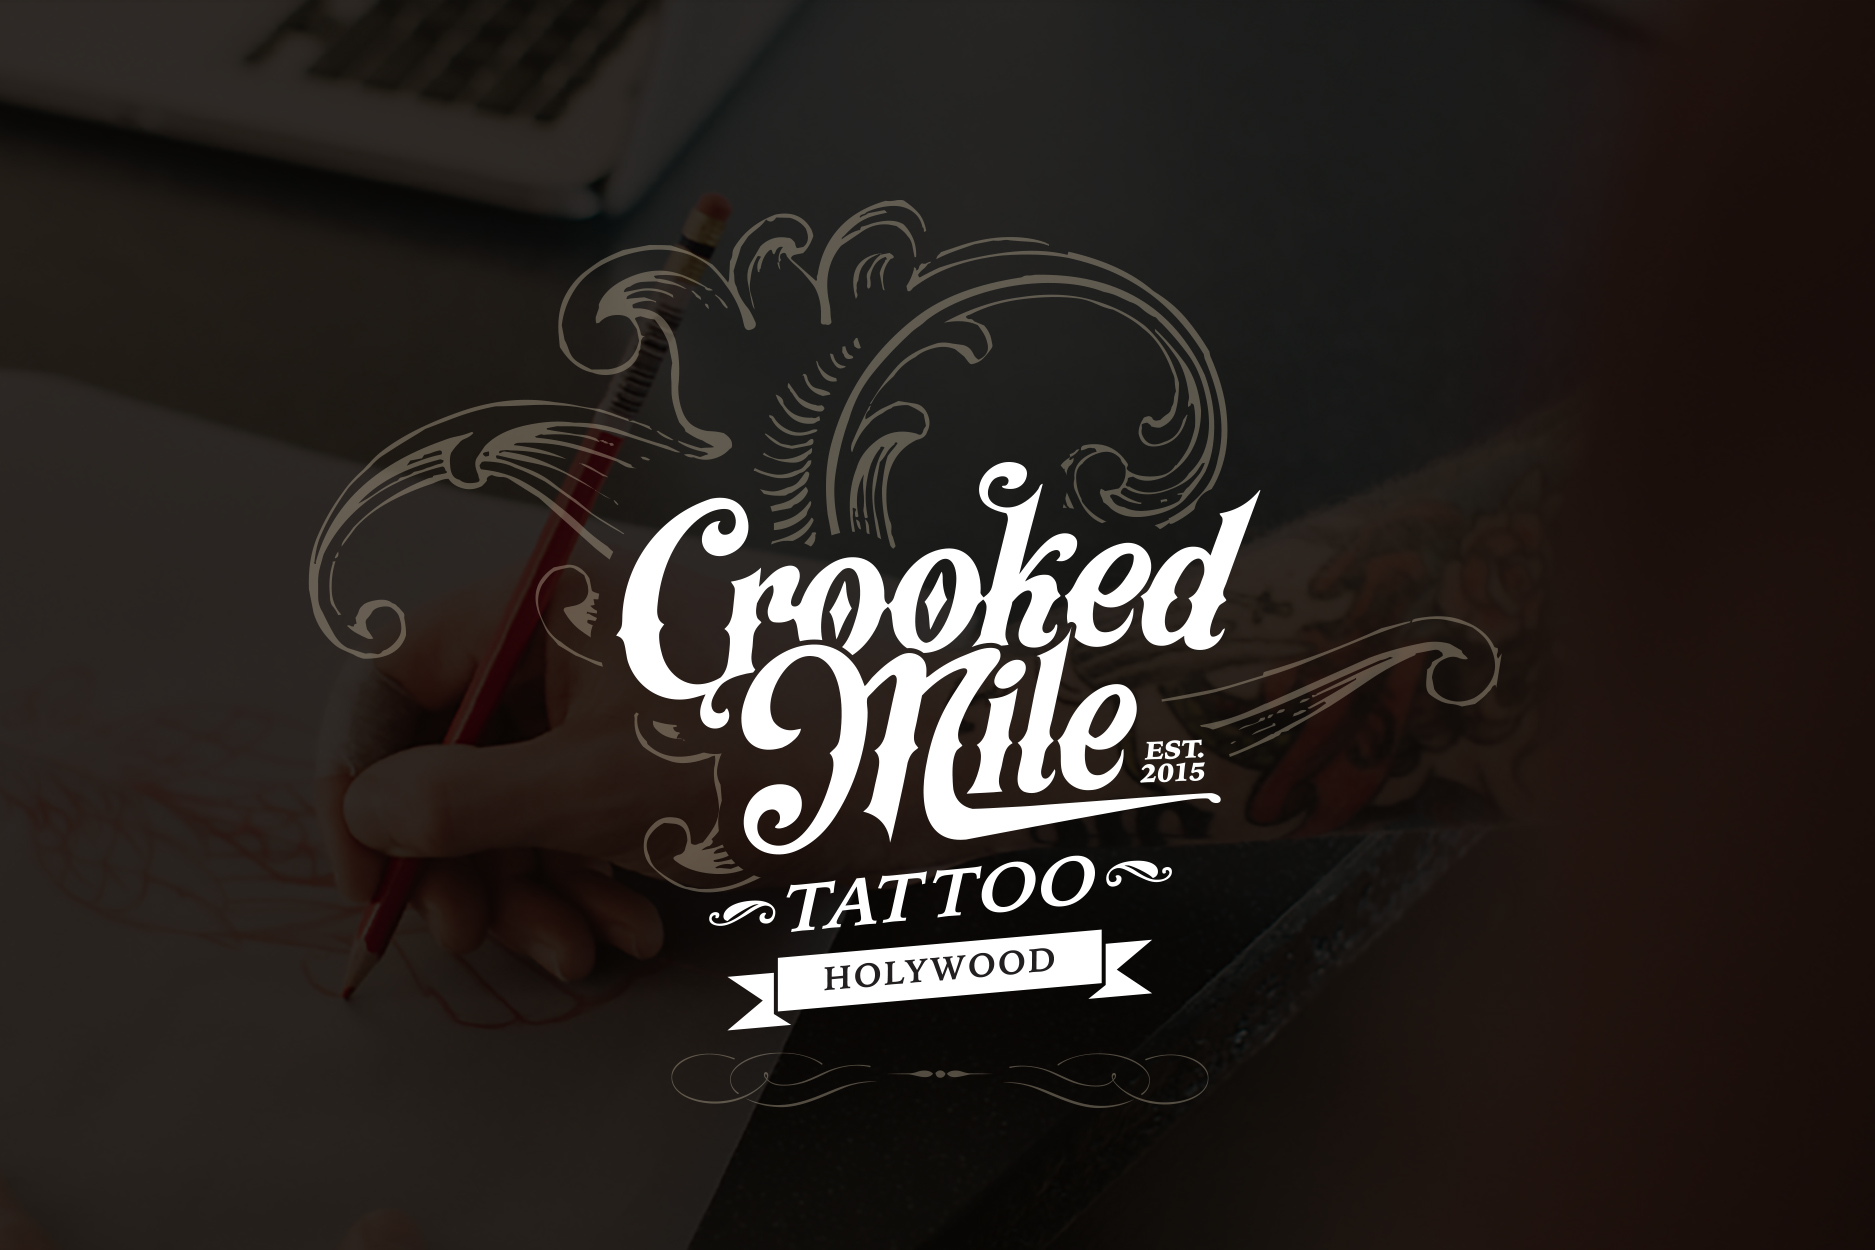 crooked-mile_header_900x600px